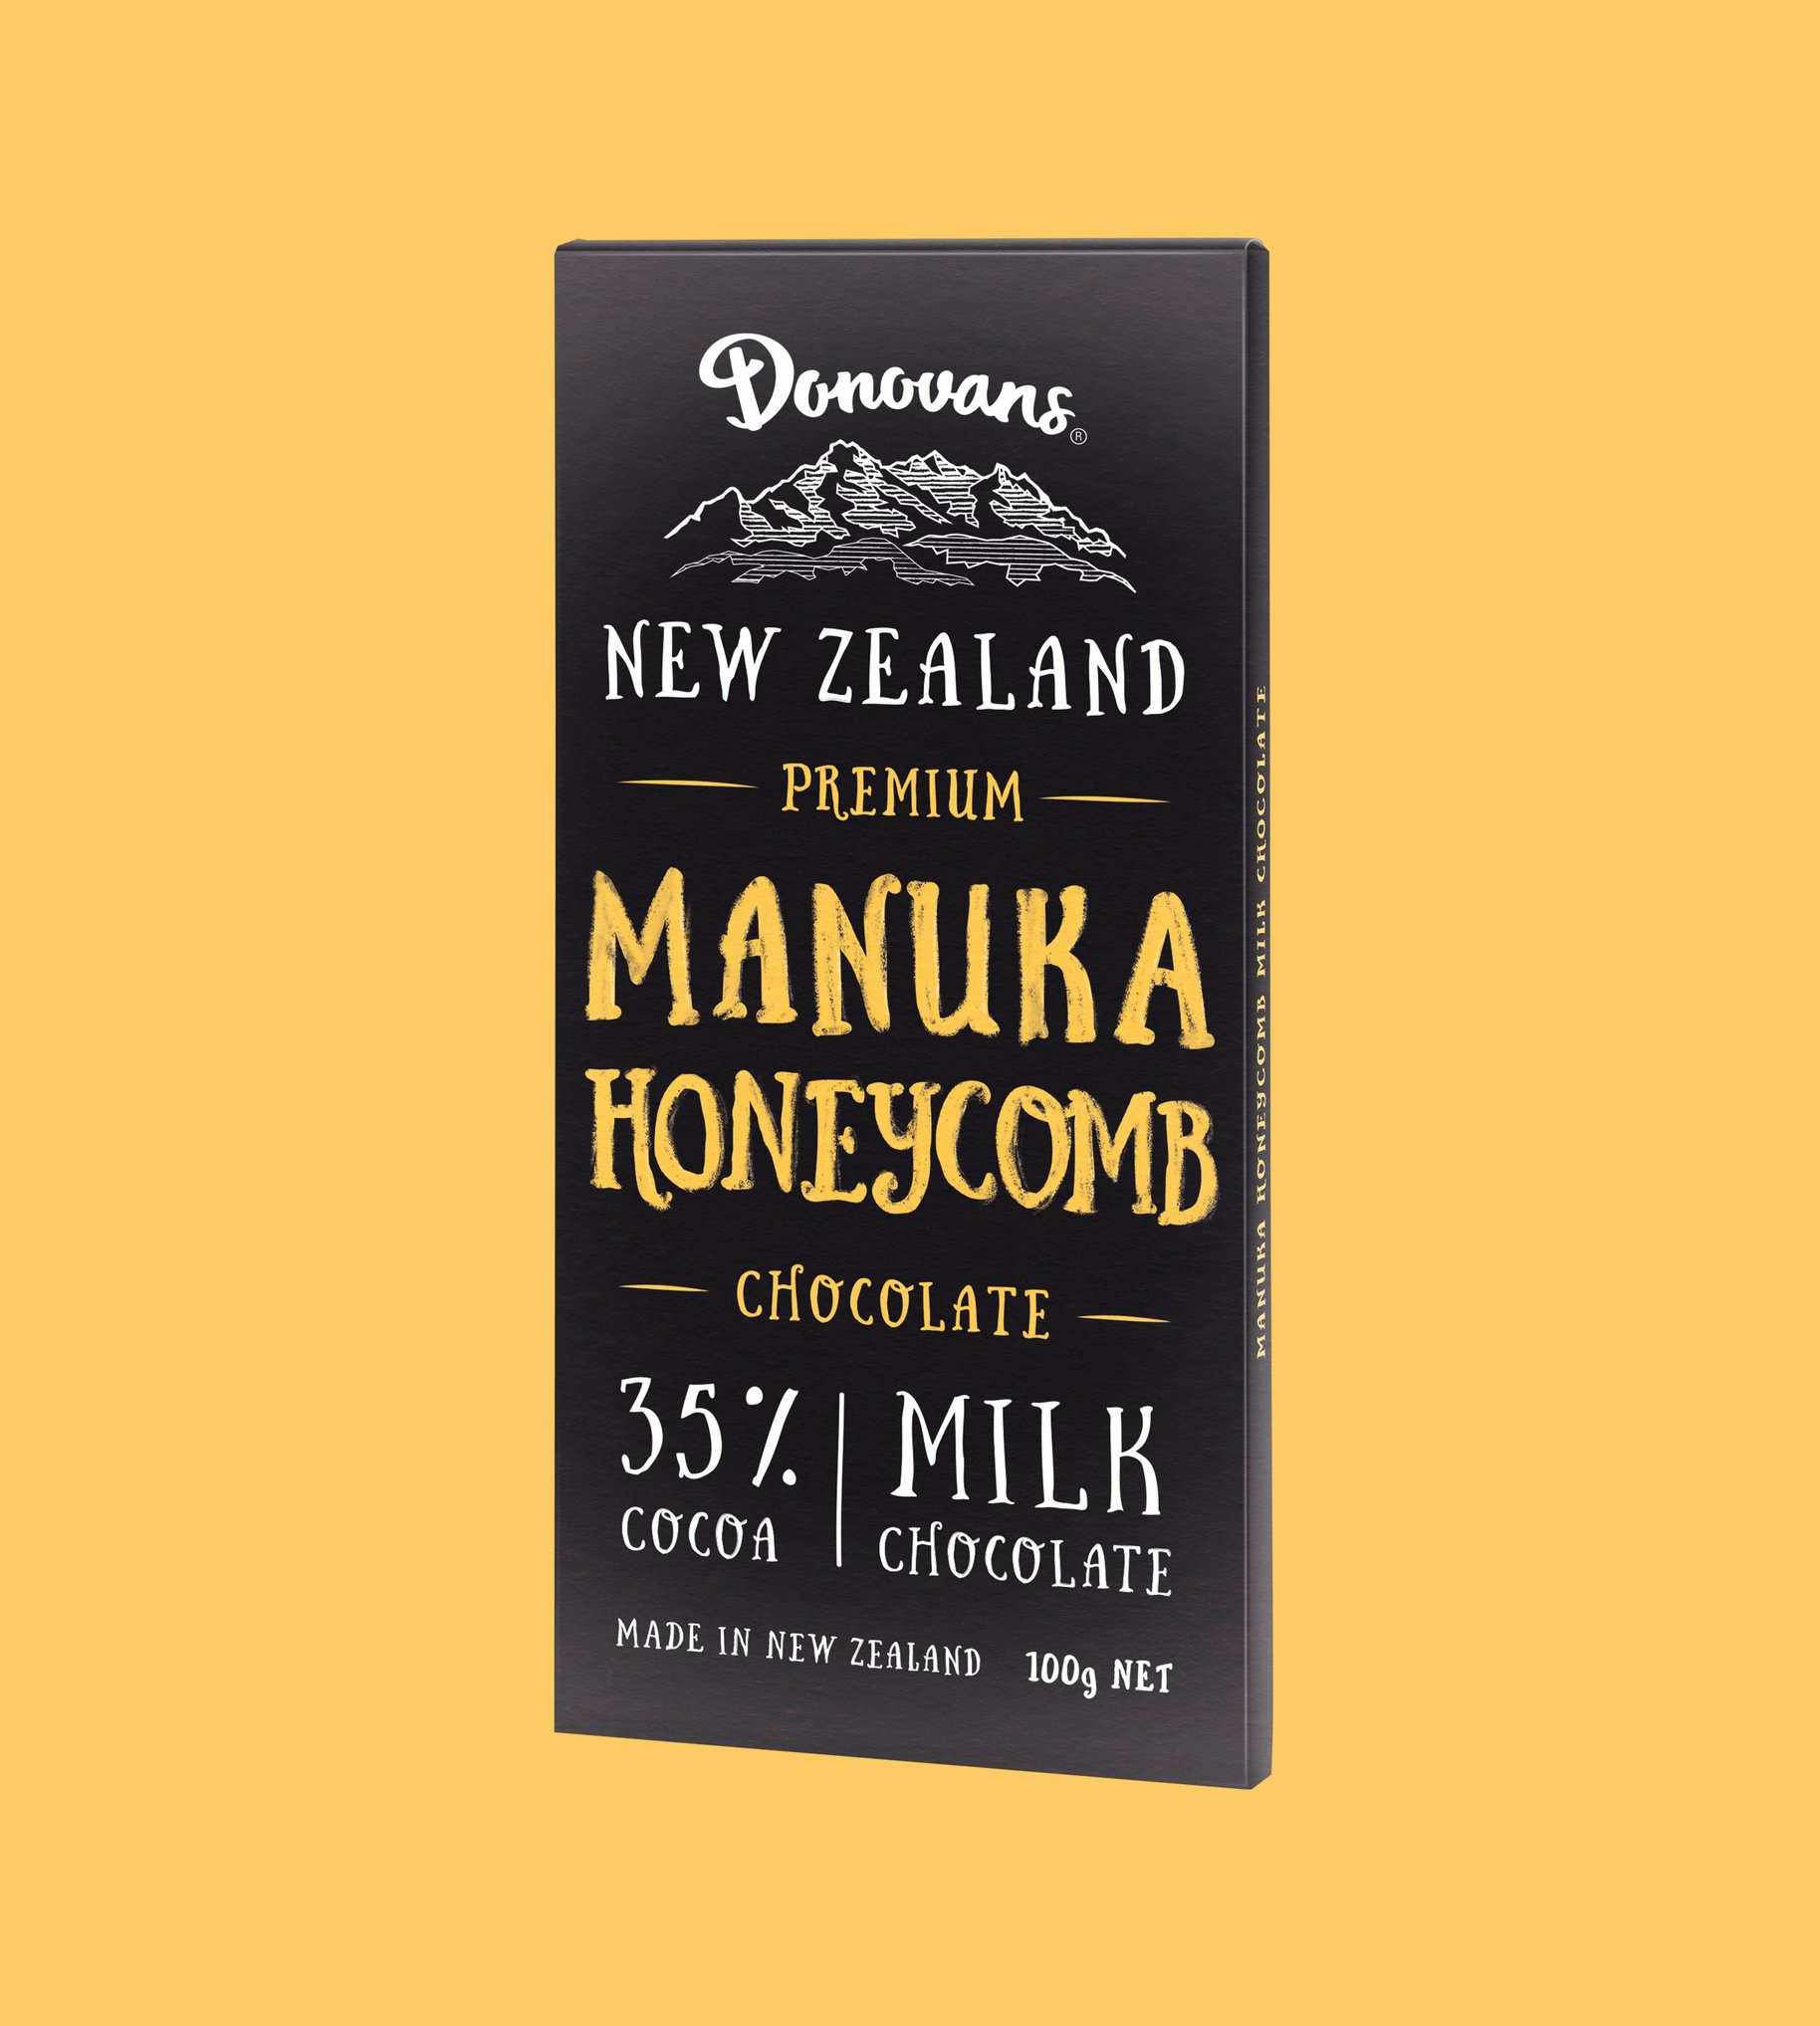 Donovans Chocolate Manuka Honeycomb block packaging